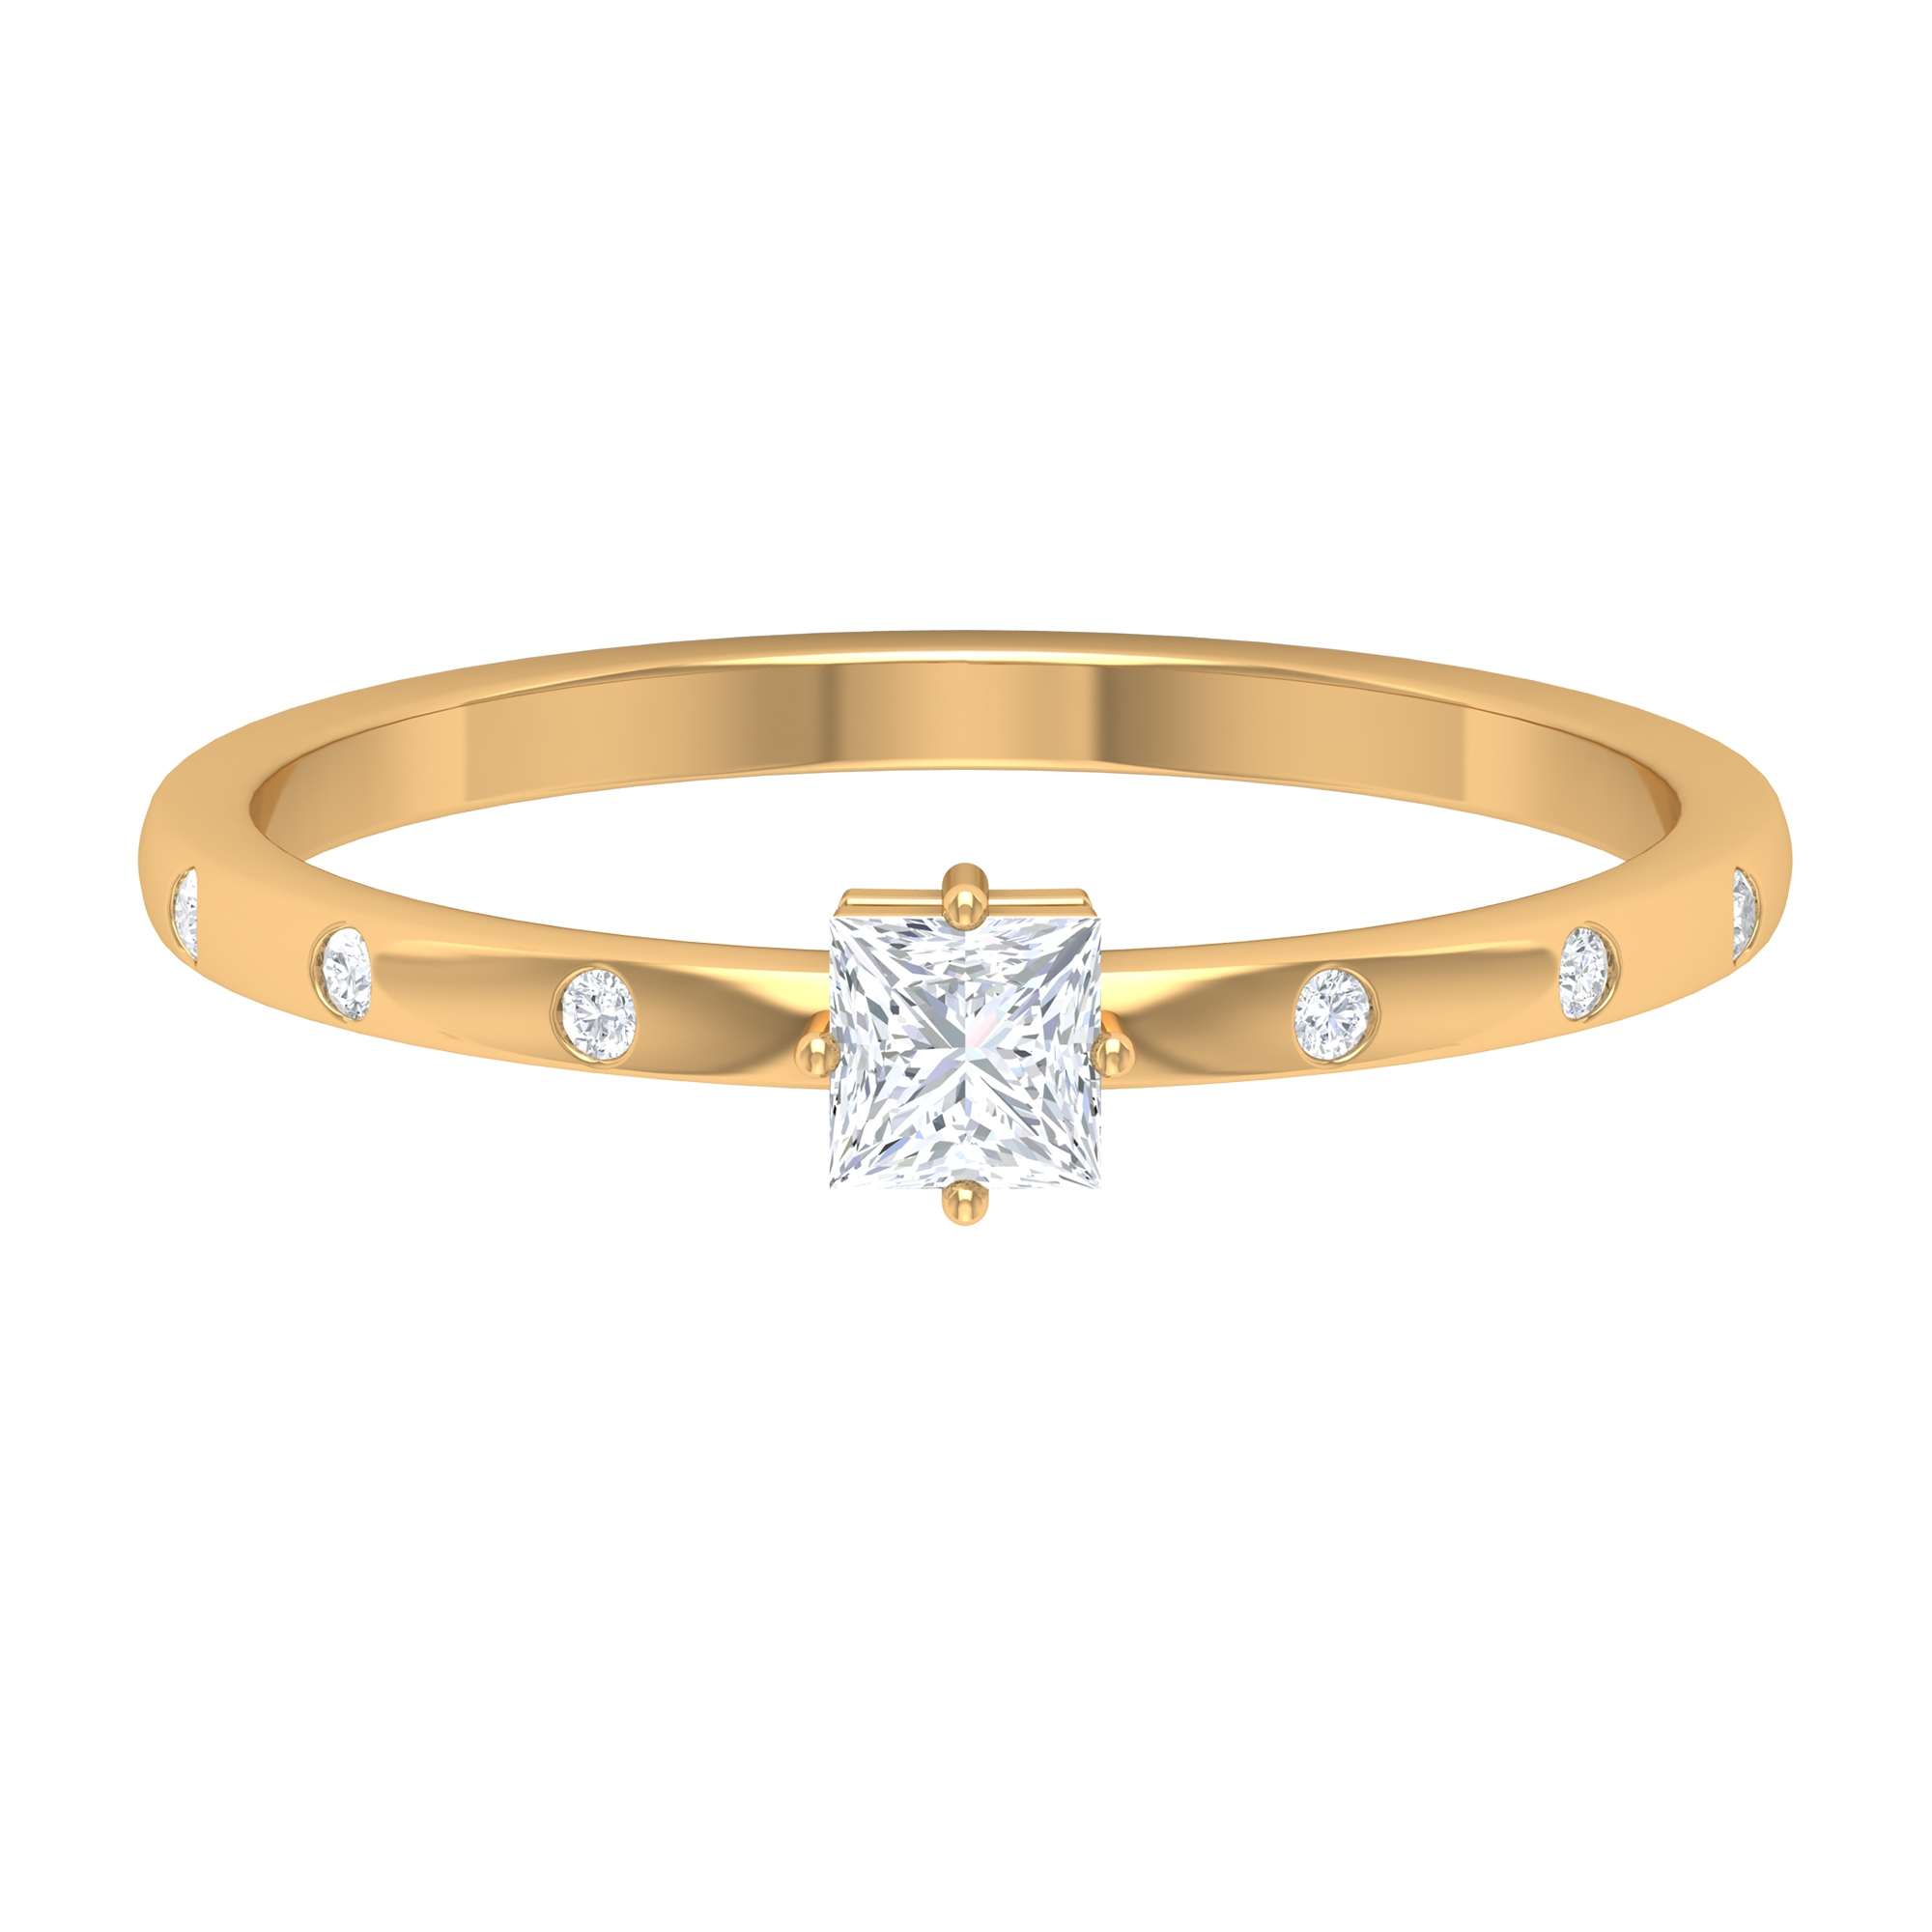 April Birthstone 1/4 CT Four Prong Diagonal Set Princess Cut Diamond Solitaire Ring with Sleek Accent Side Stones